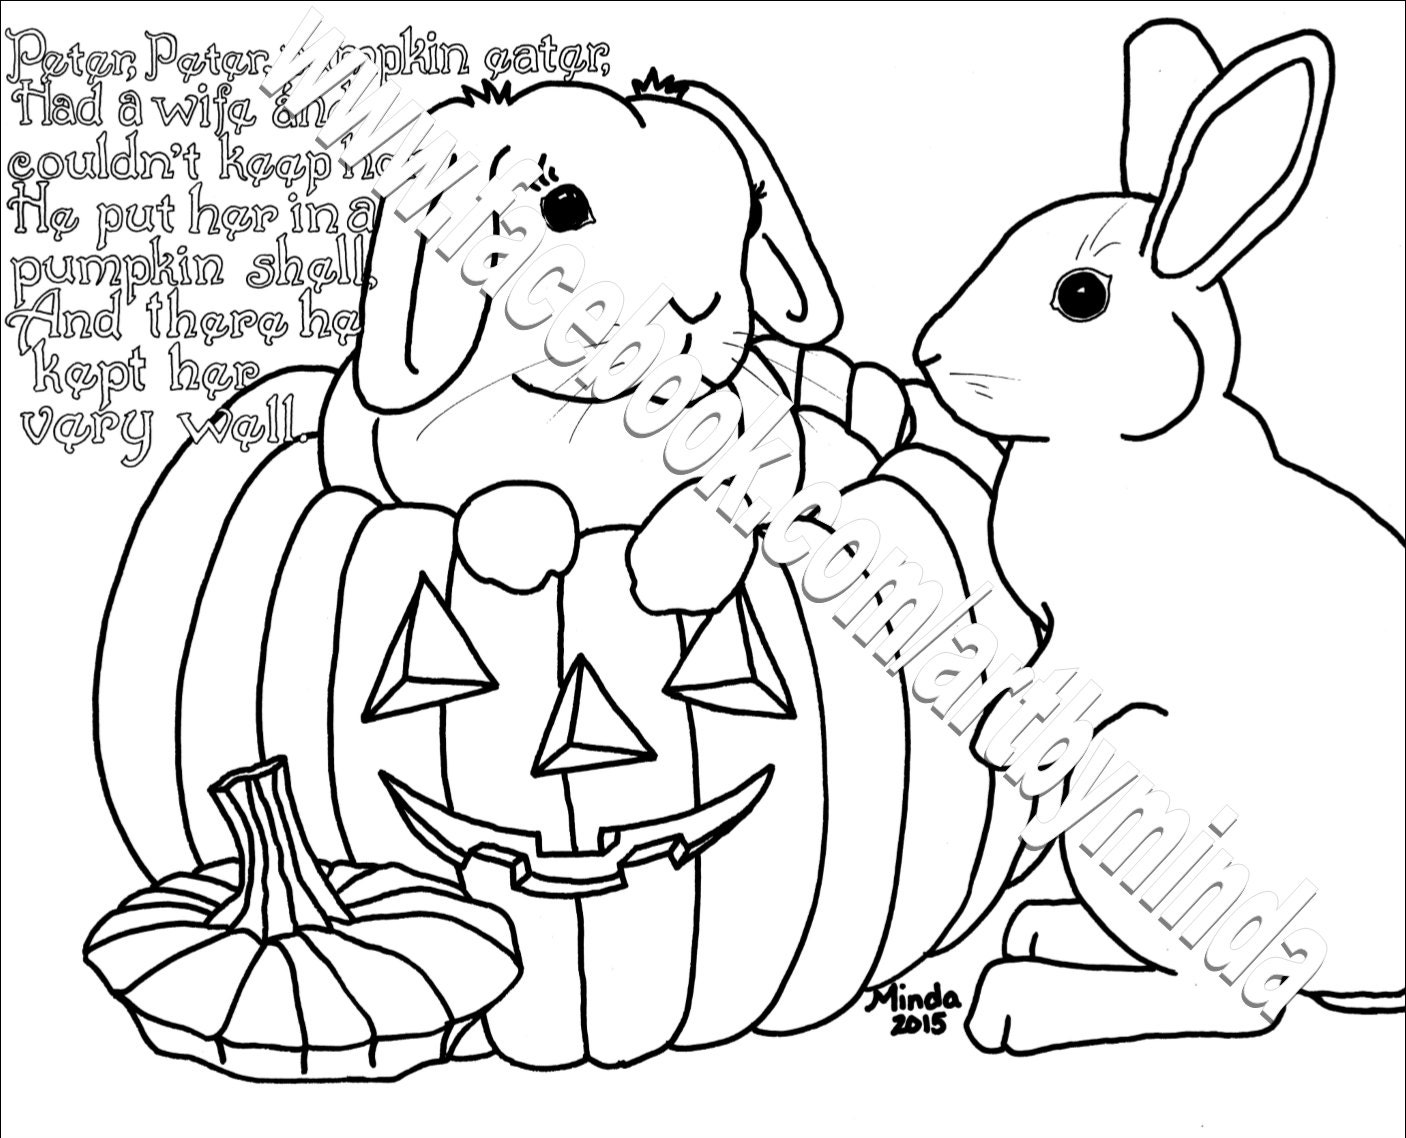 Peter Pumpkin Eater Coloring Page Home Sketch Coloring Page Pumpkin Eater Coloring Page